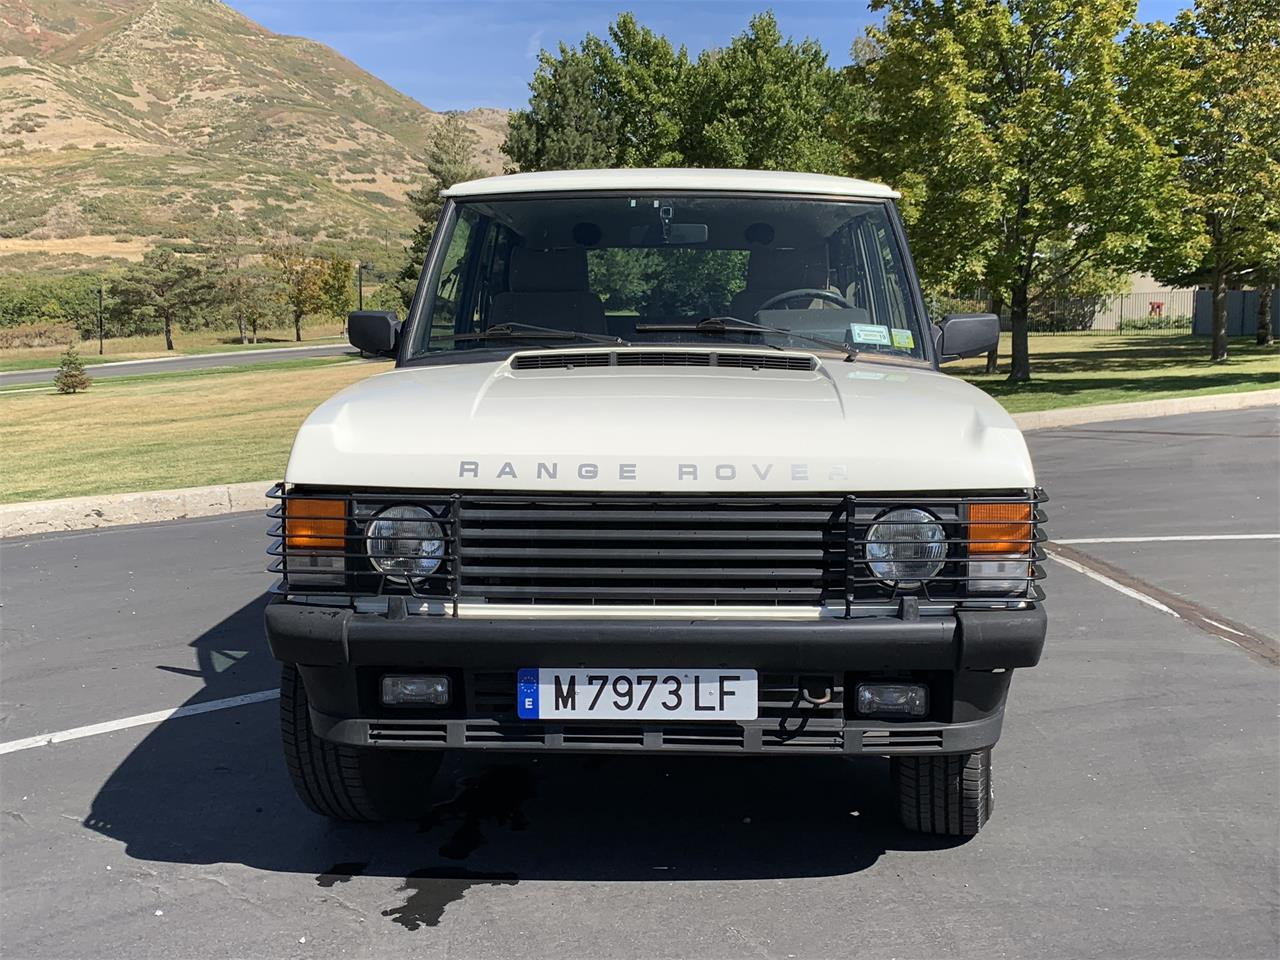 1990 Land Rover Range Rover for sale in Boise, ID – photo 5